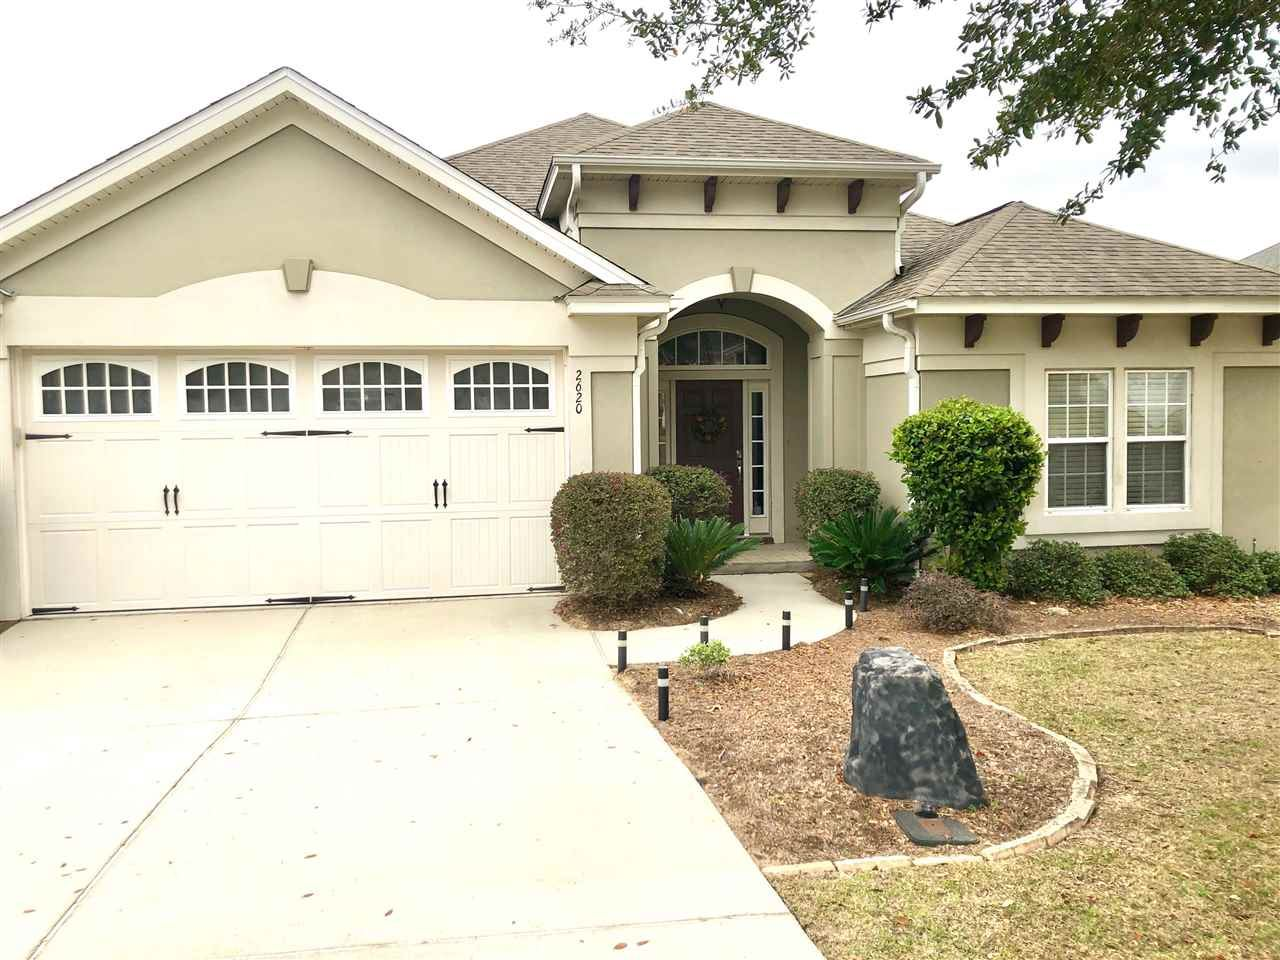 Photo for 2620 Ulysses Road, TALLAHASSEE, FL 32312 (MLS # 314382)